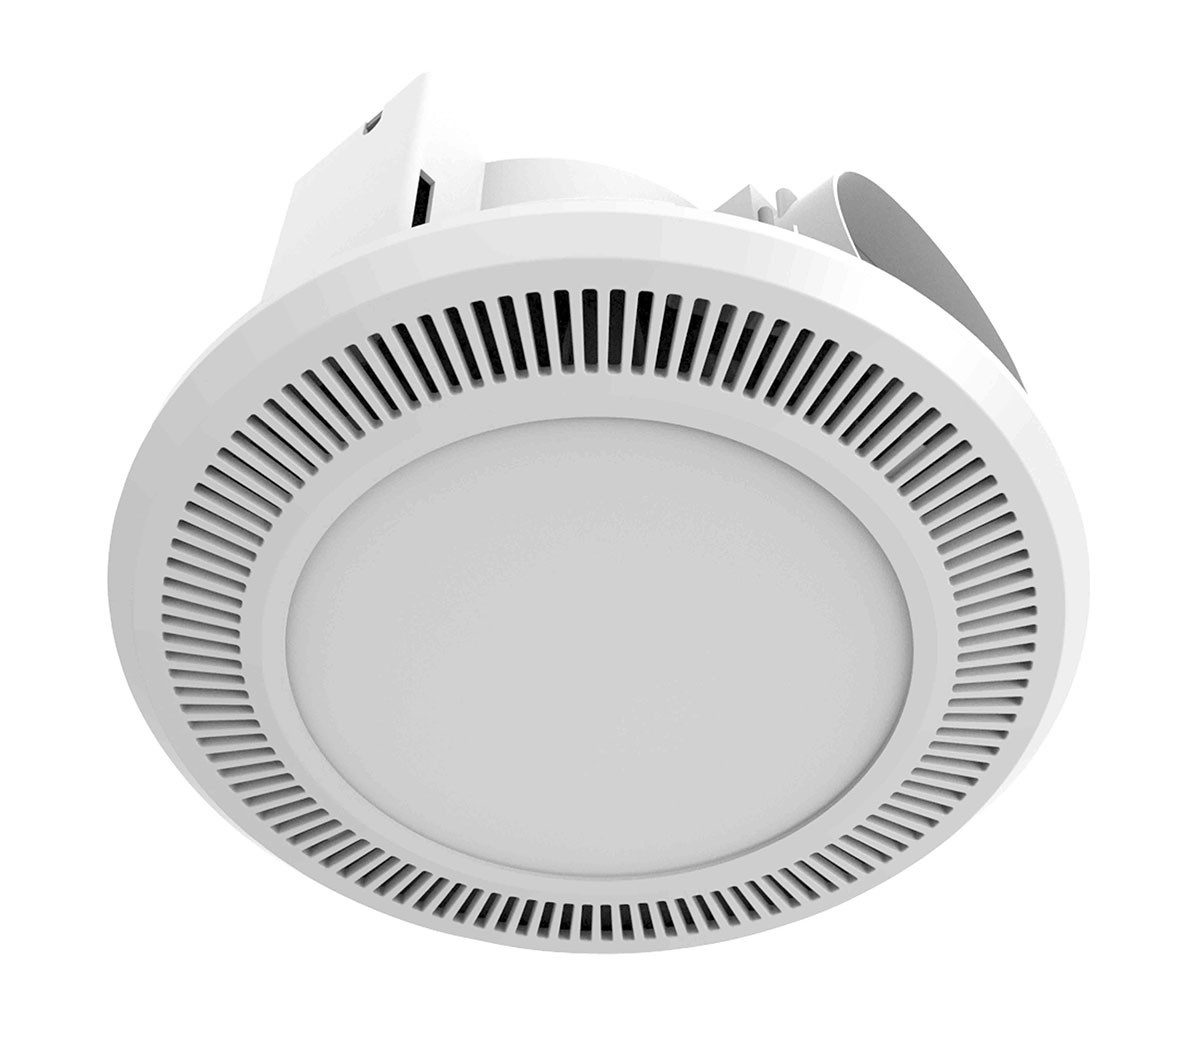 Ultraline led high extraction bathroom exhaust fan with 12w led light for Bathroom exhaust fan with led light